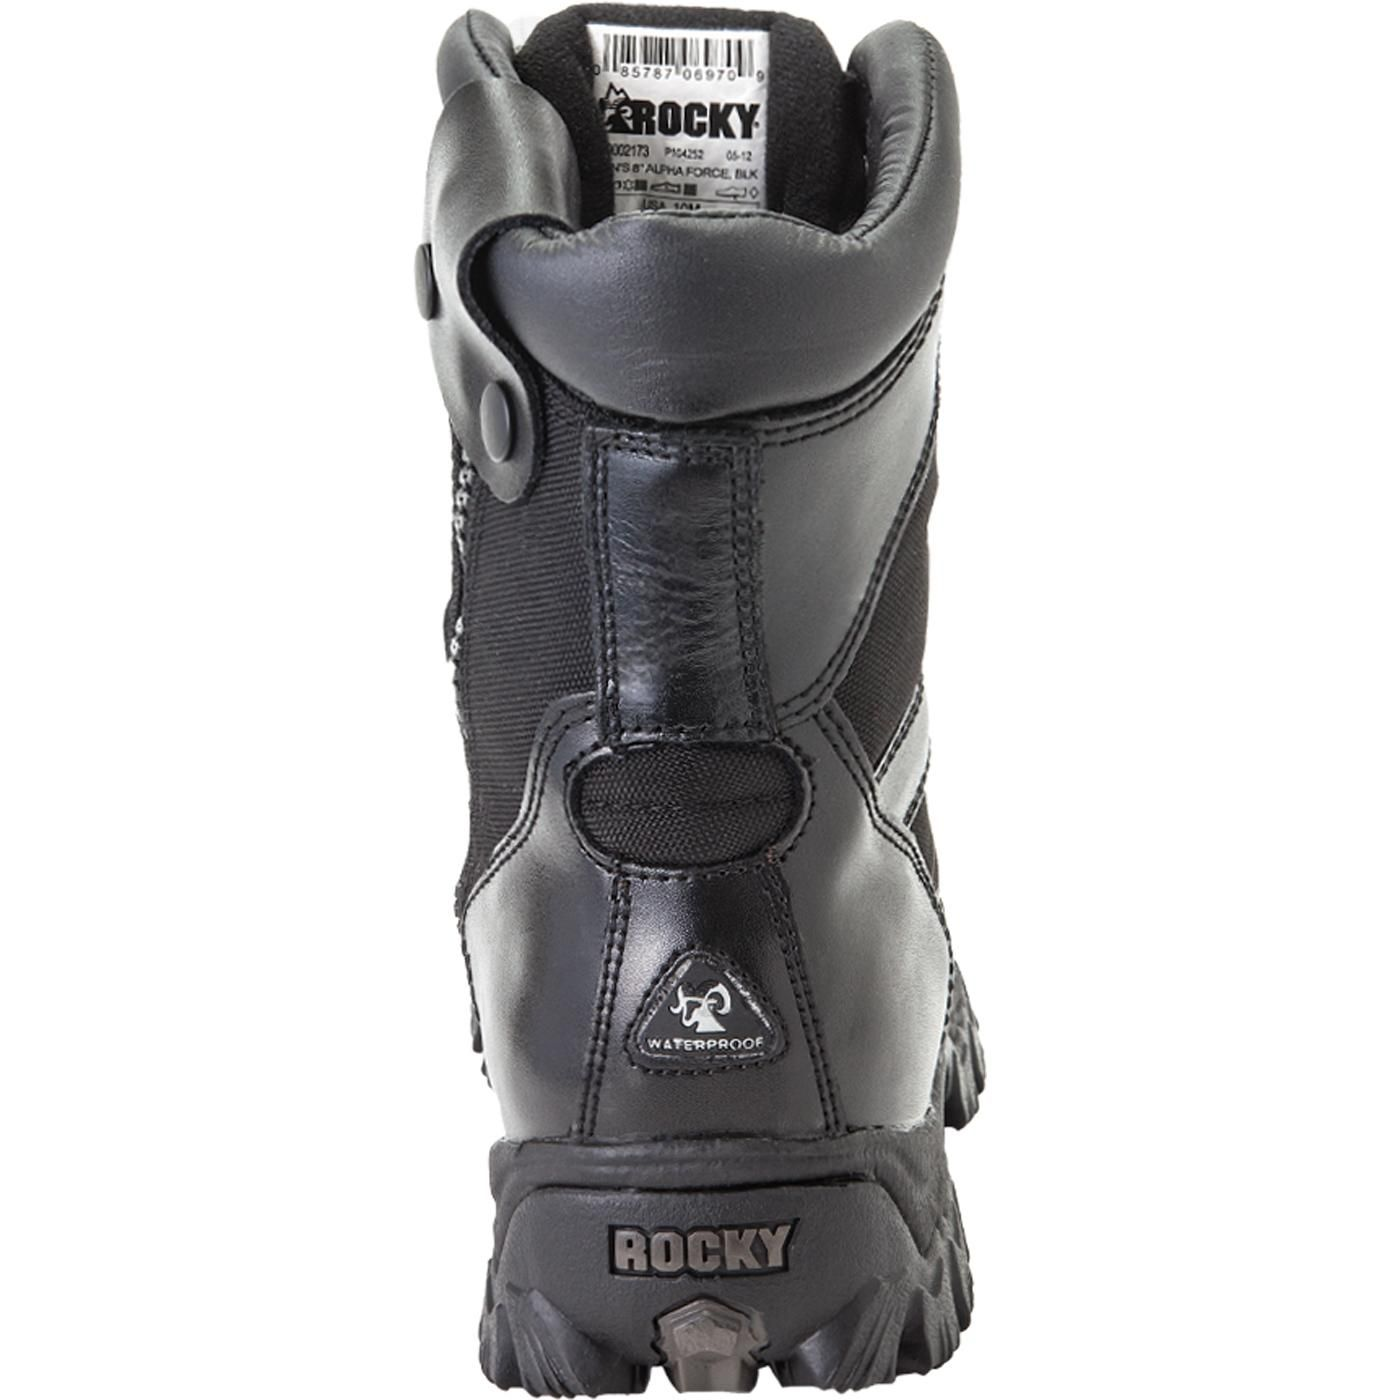 39739924ec2 Rocky Alpha Force Zipper Waterproof Duty Boot | Rocky Military ...